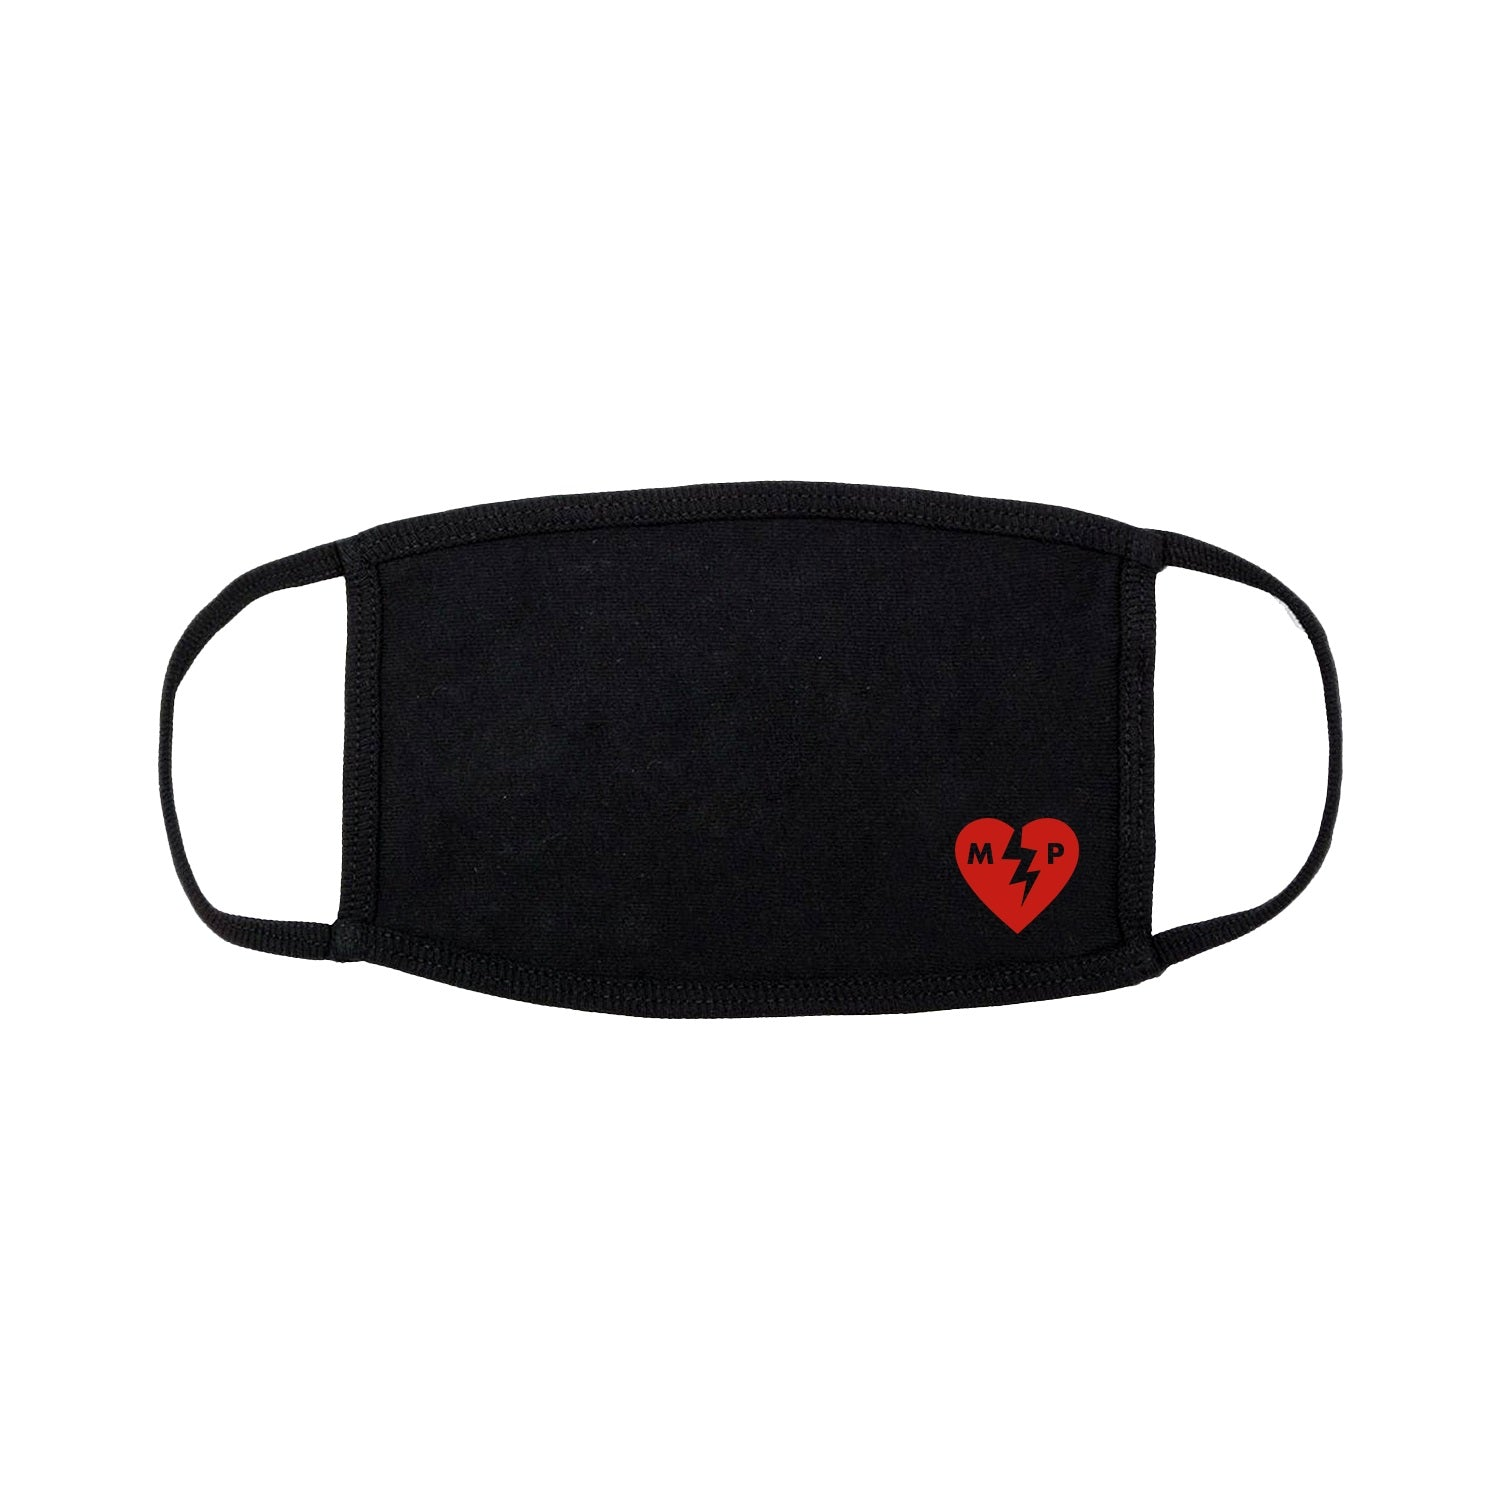 Broken Heart Black Face Mask